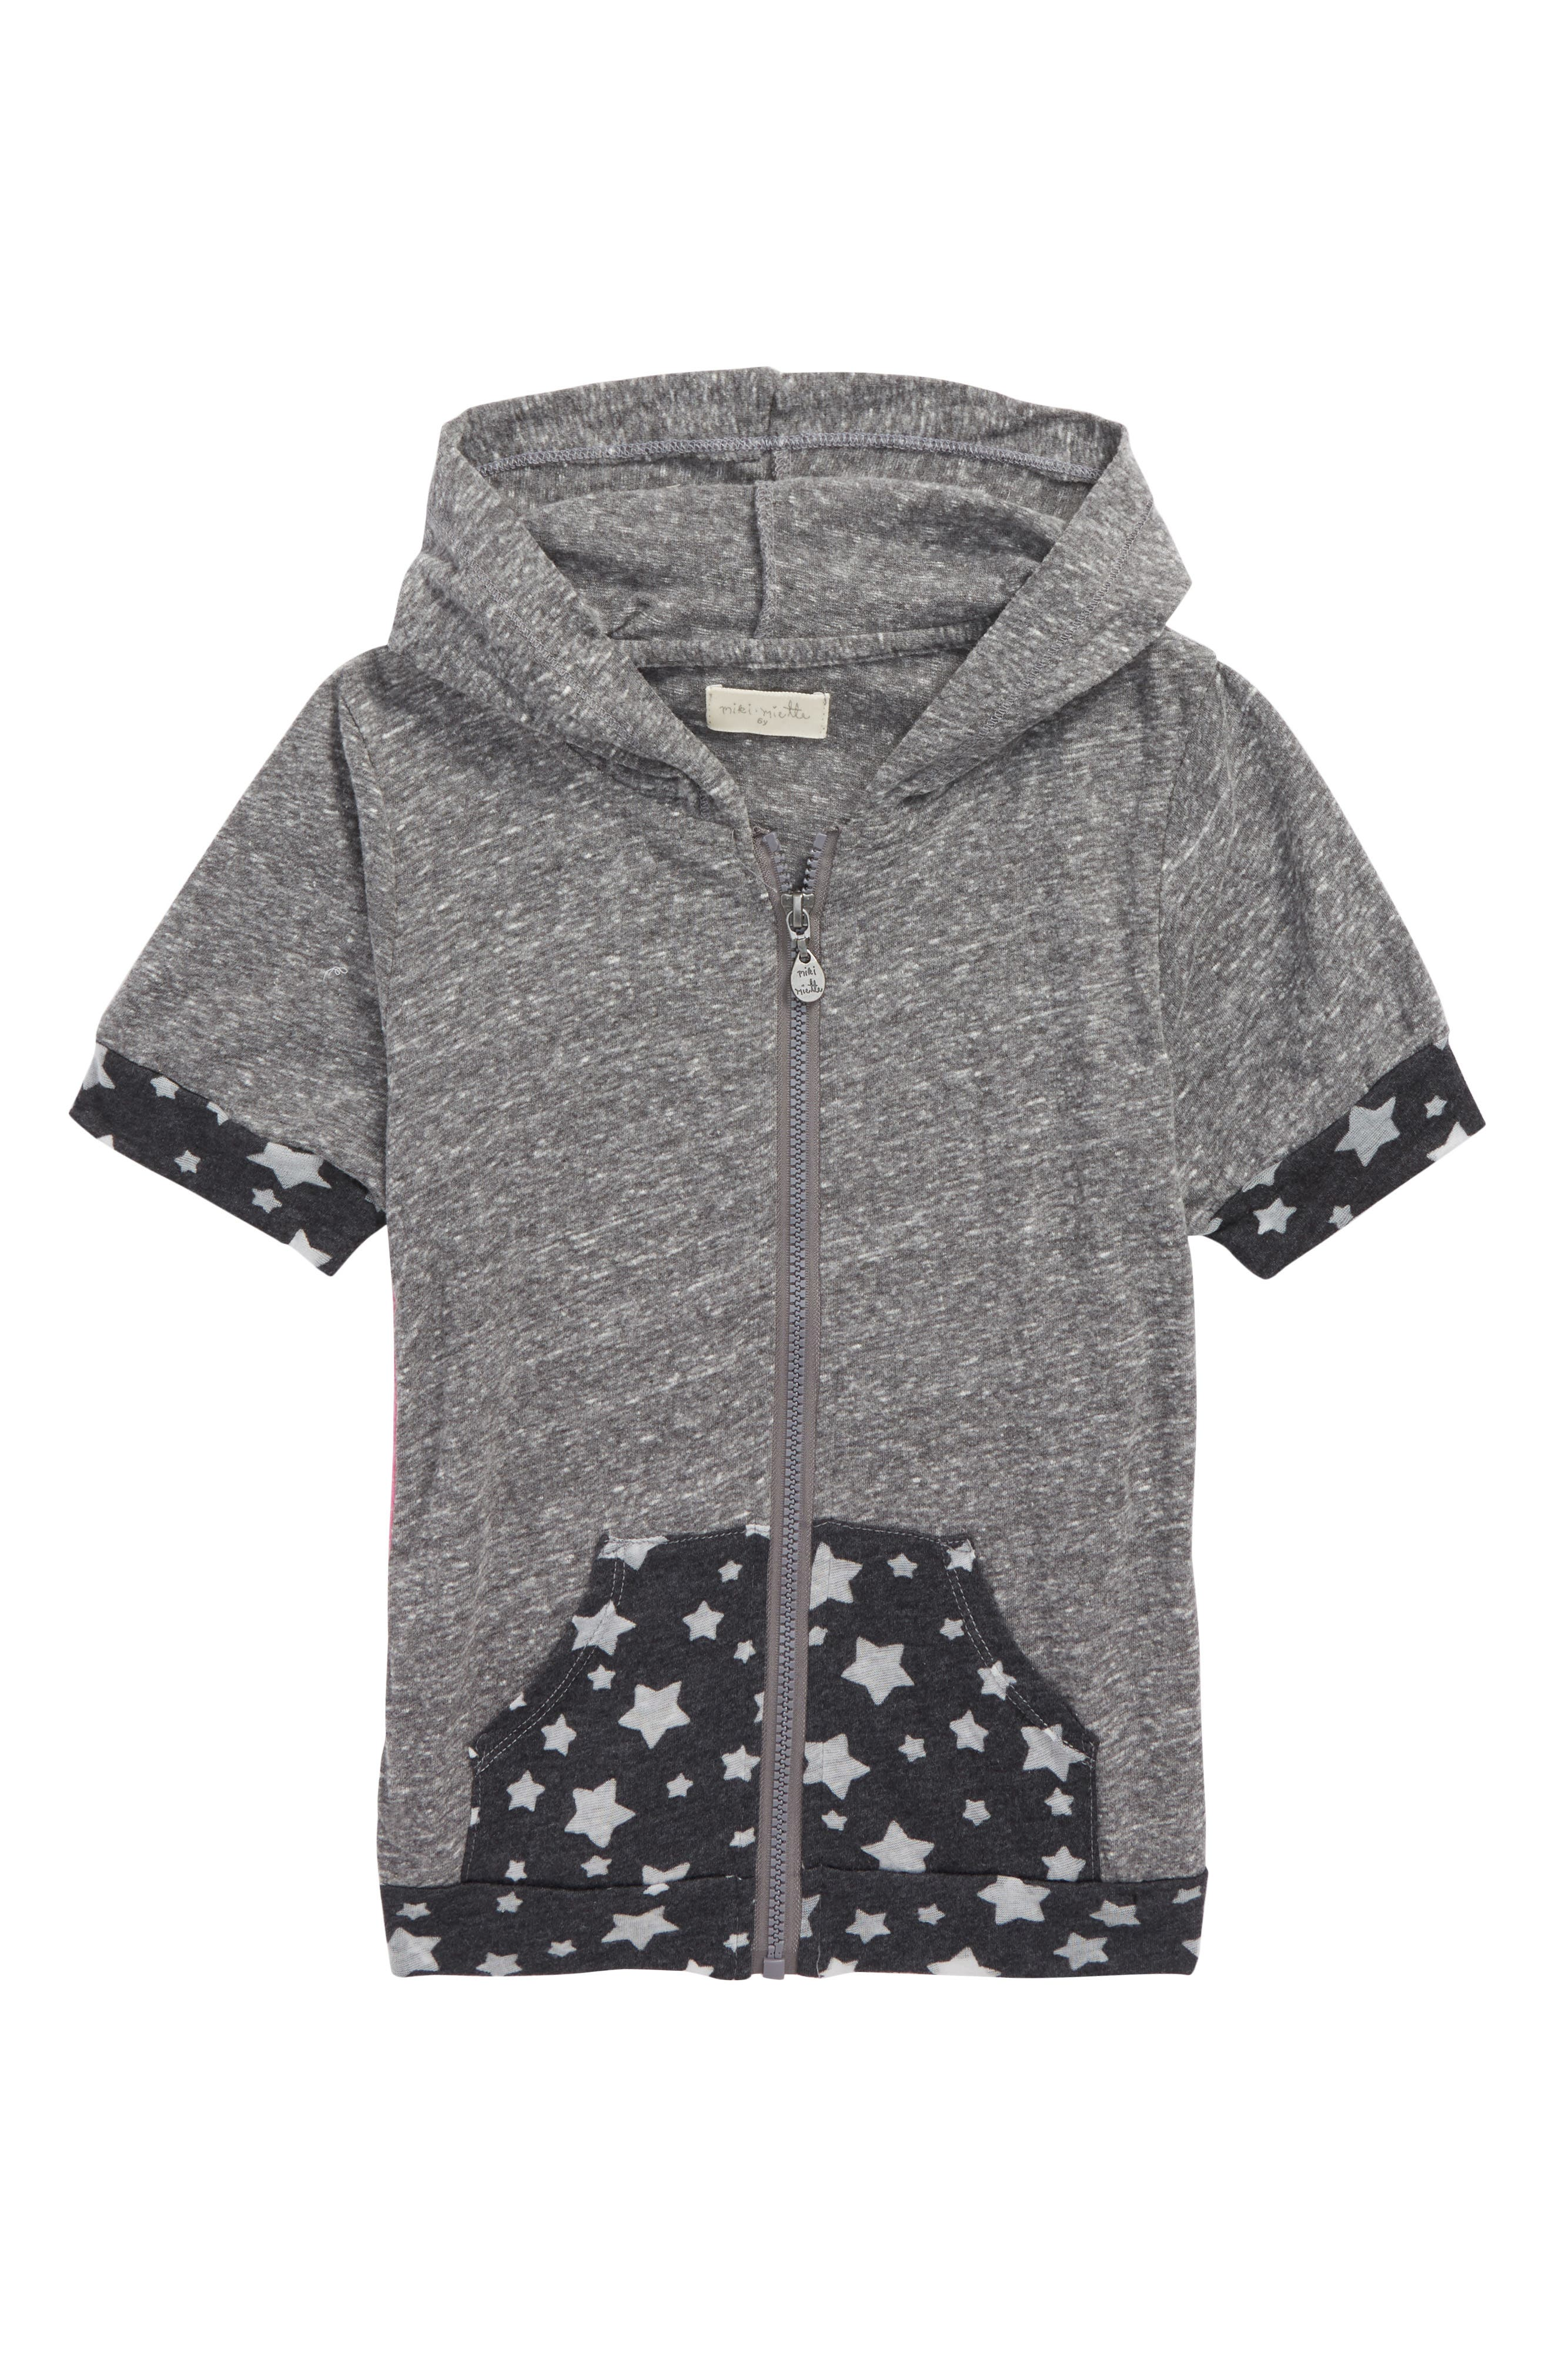 Miki Miette Lolo Short Sleeve Hoodie (Toddler Girls & Little Girls)